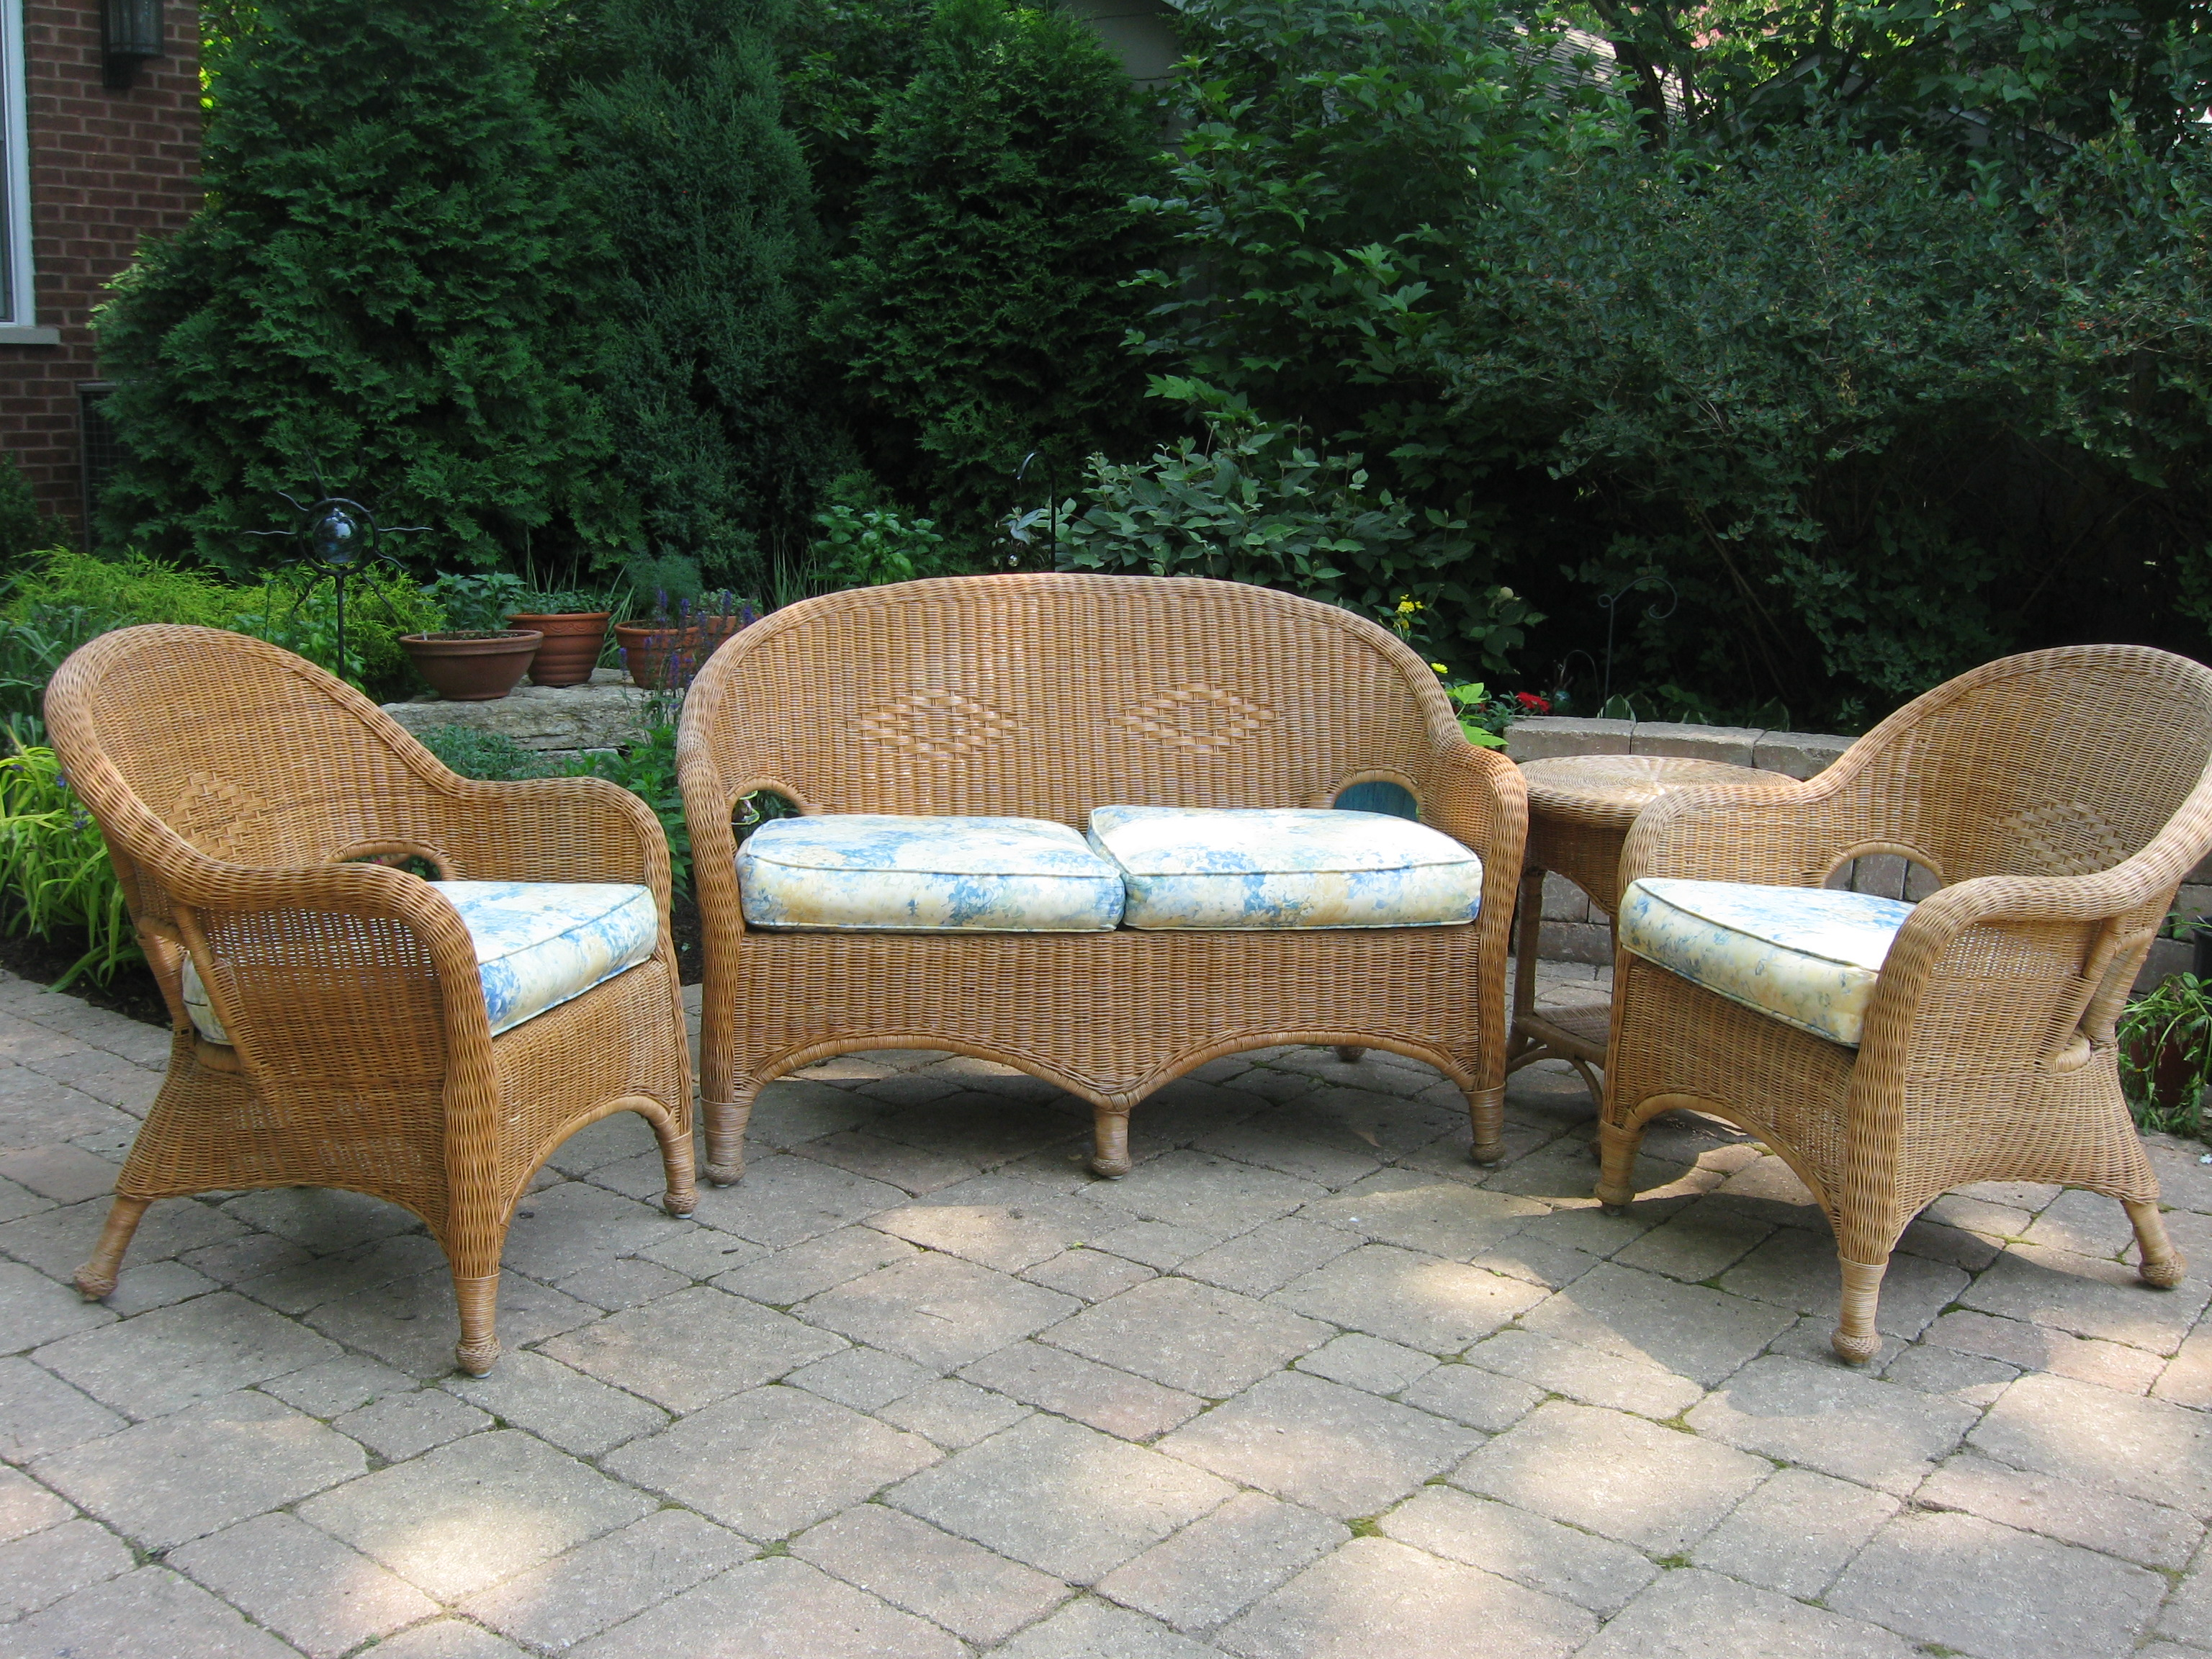 Pier One Wicker Furniture | Pier One Wicker Bedroom Set | Pier Imports Furniture